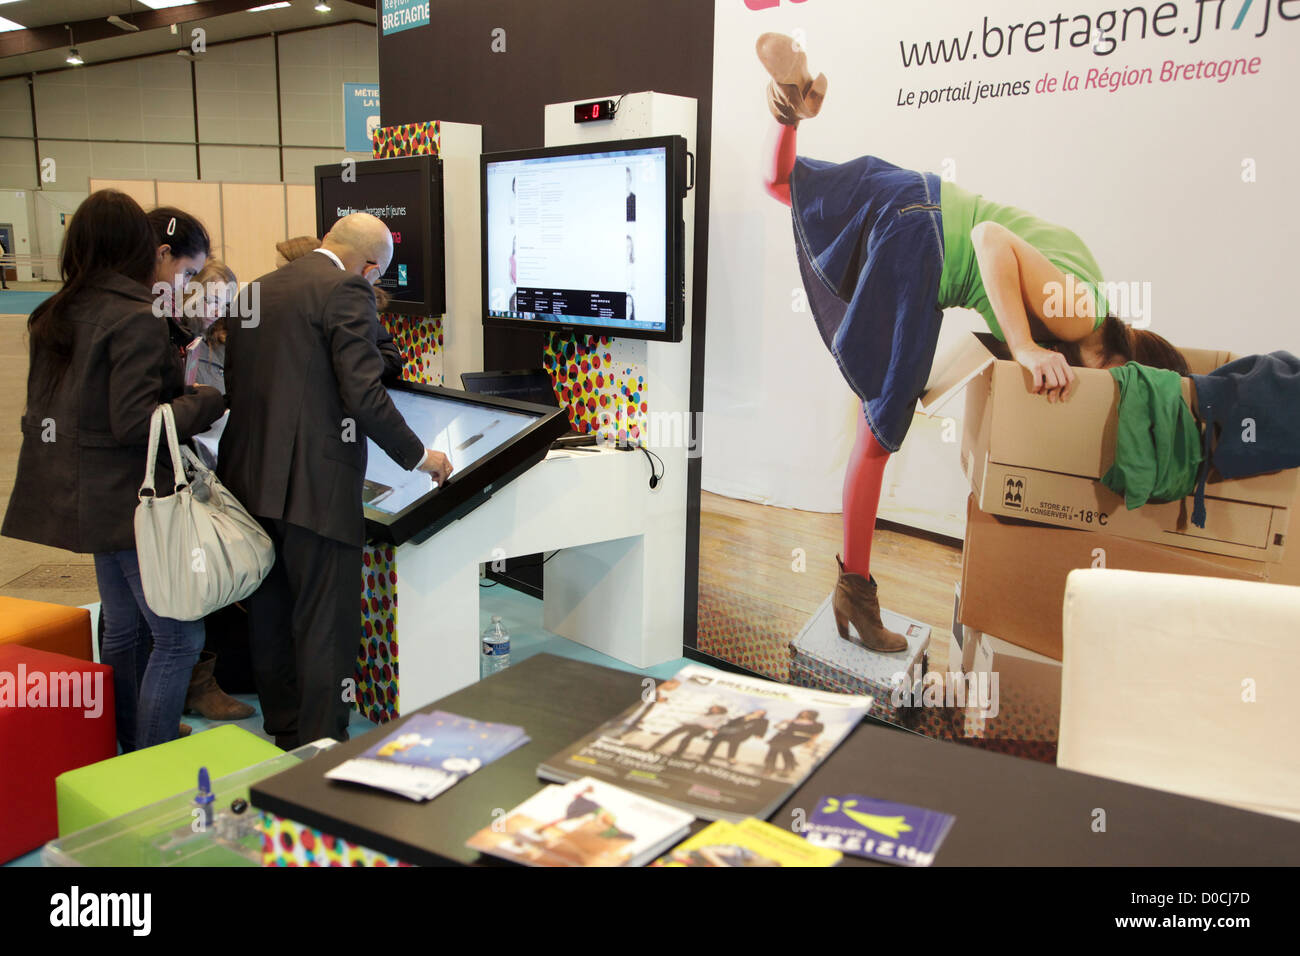 INFORMATION FORUM 42ND OLYMPIADES DES METIERS IN BRITTANY RENNES FRANCE - Stock Image